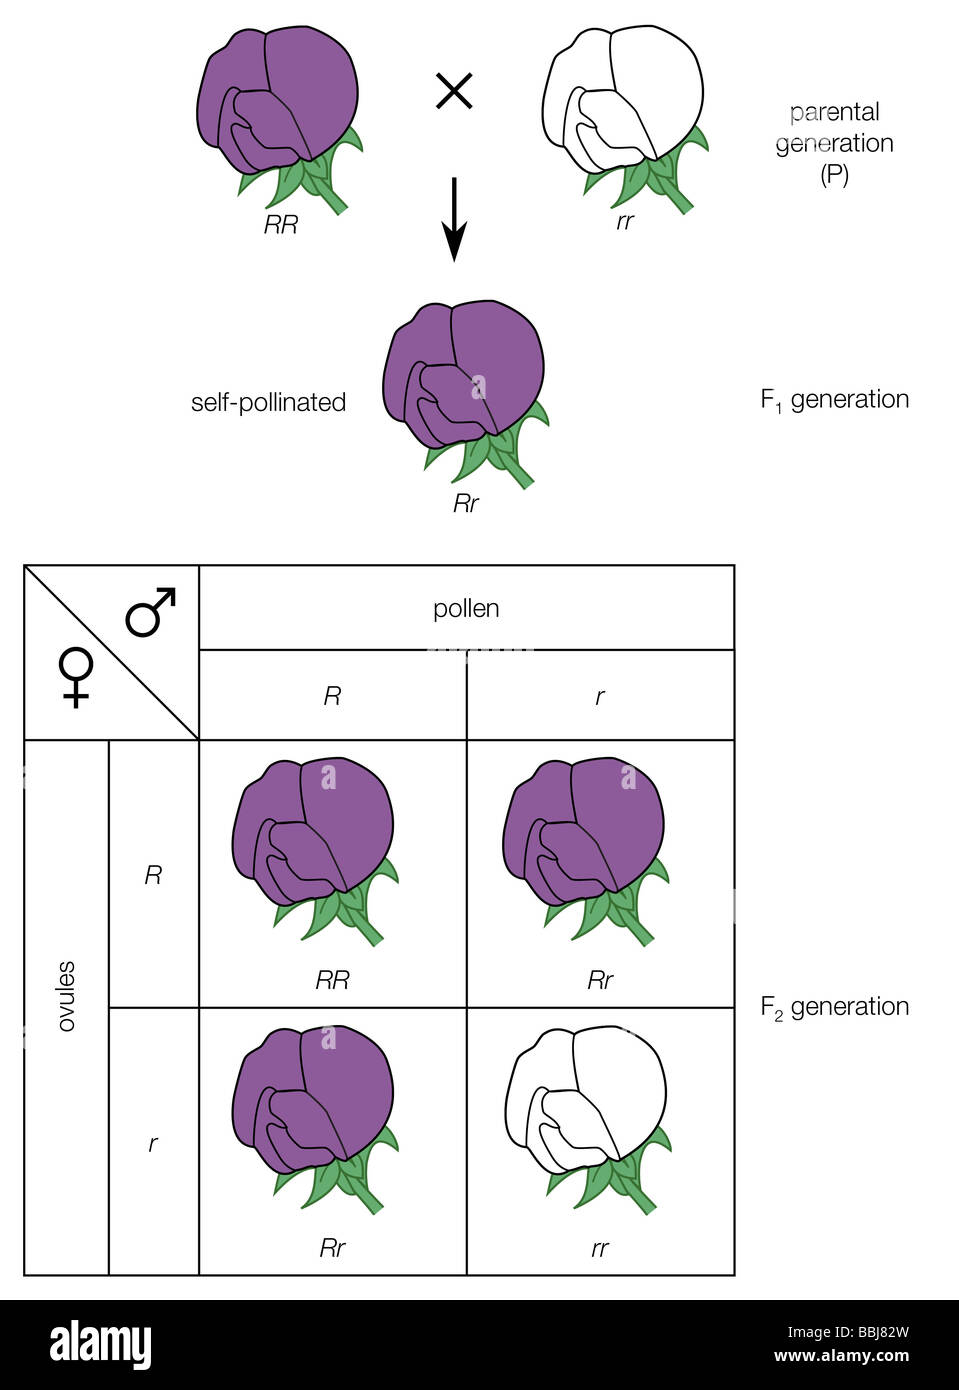 pea flower diagram saab 9 3 radio wiring mendel's law of segregation cross a purple-flowered and stock photo: 24373073 - alamy